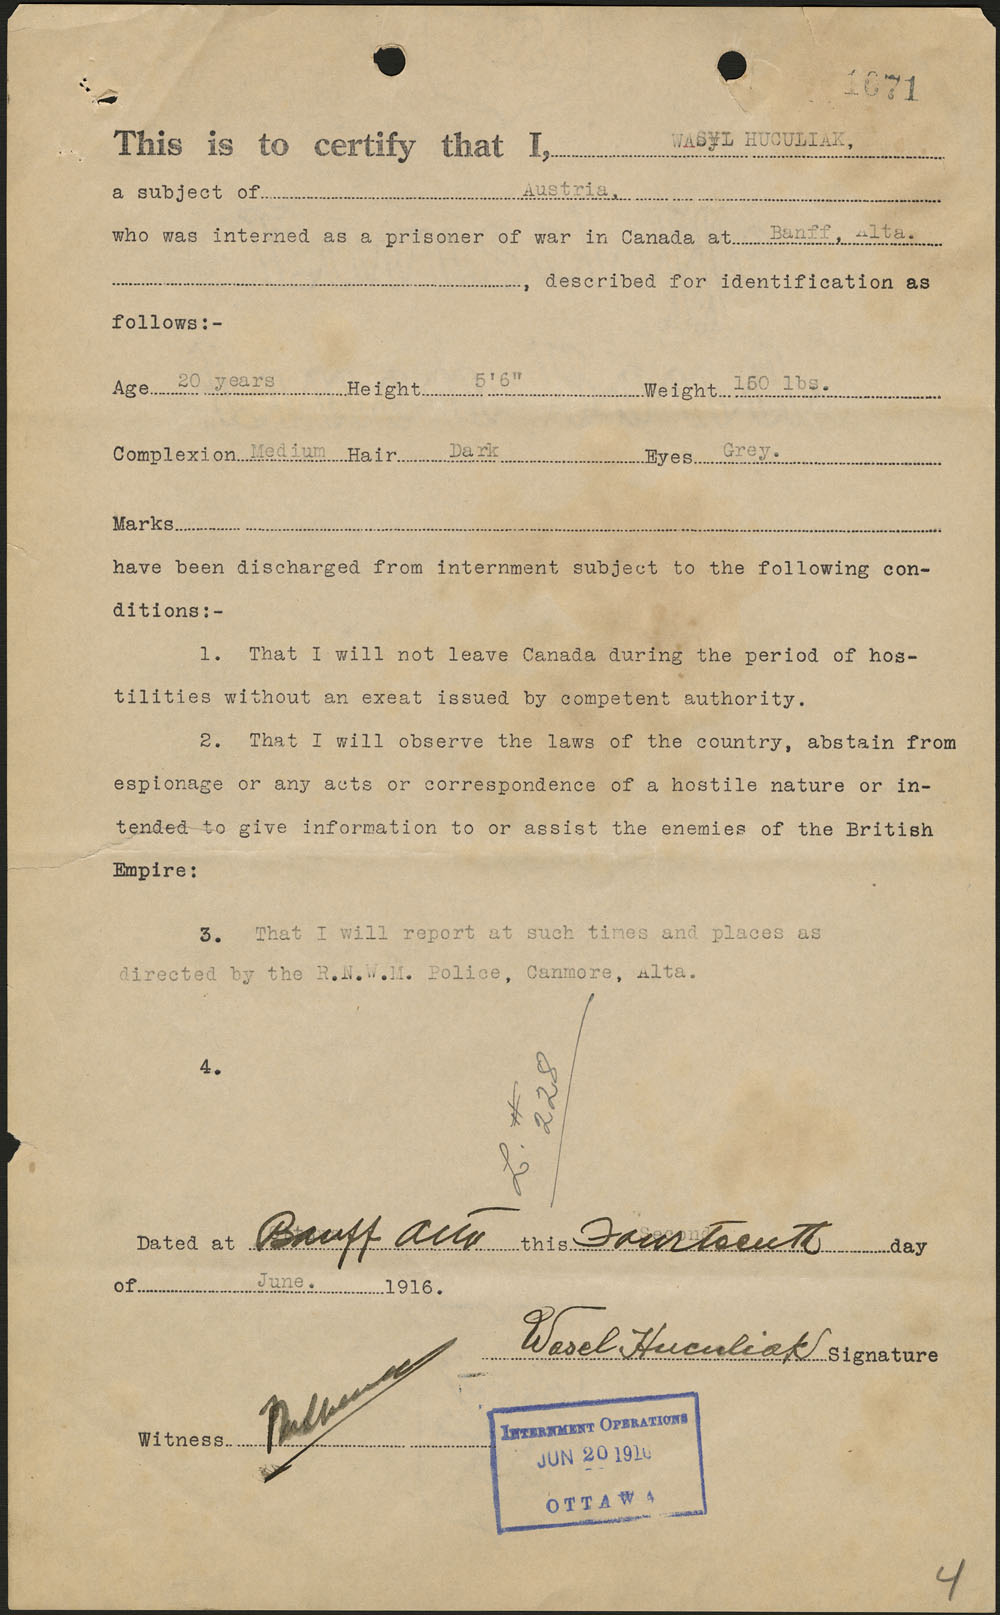 Wasyl Hasiuk's certificate of release